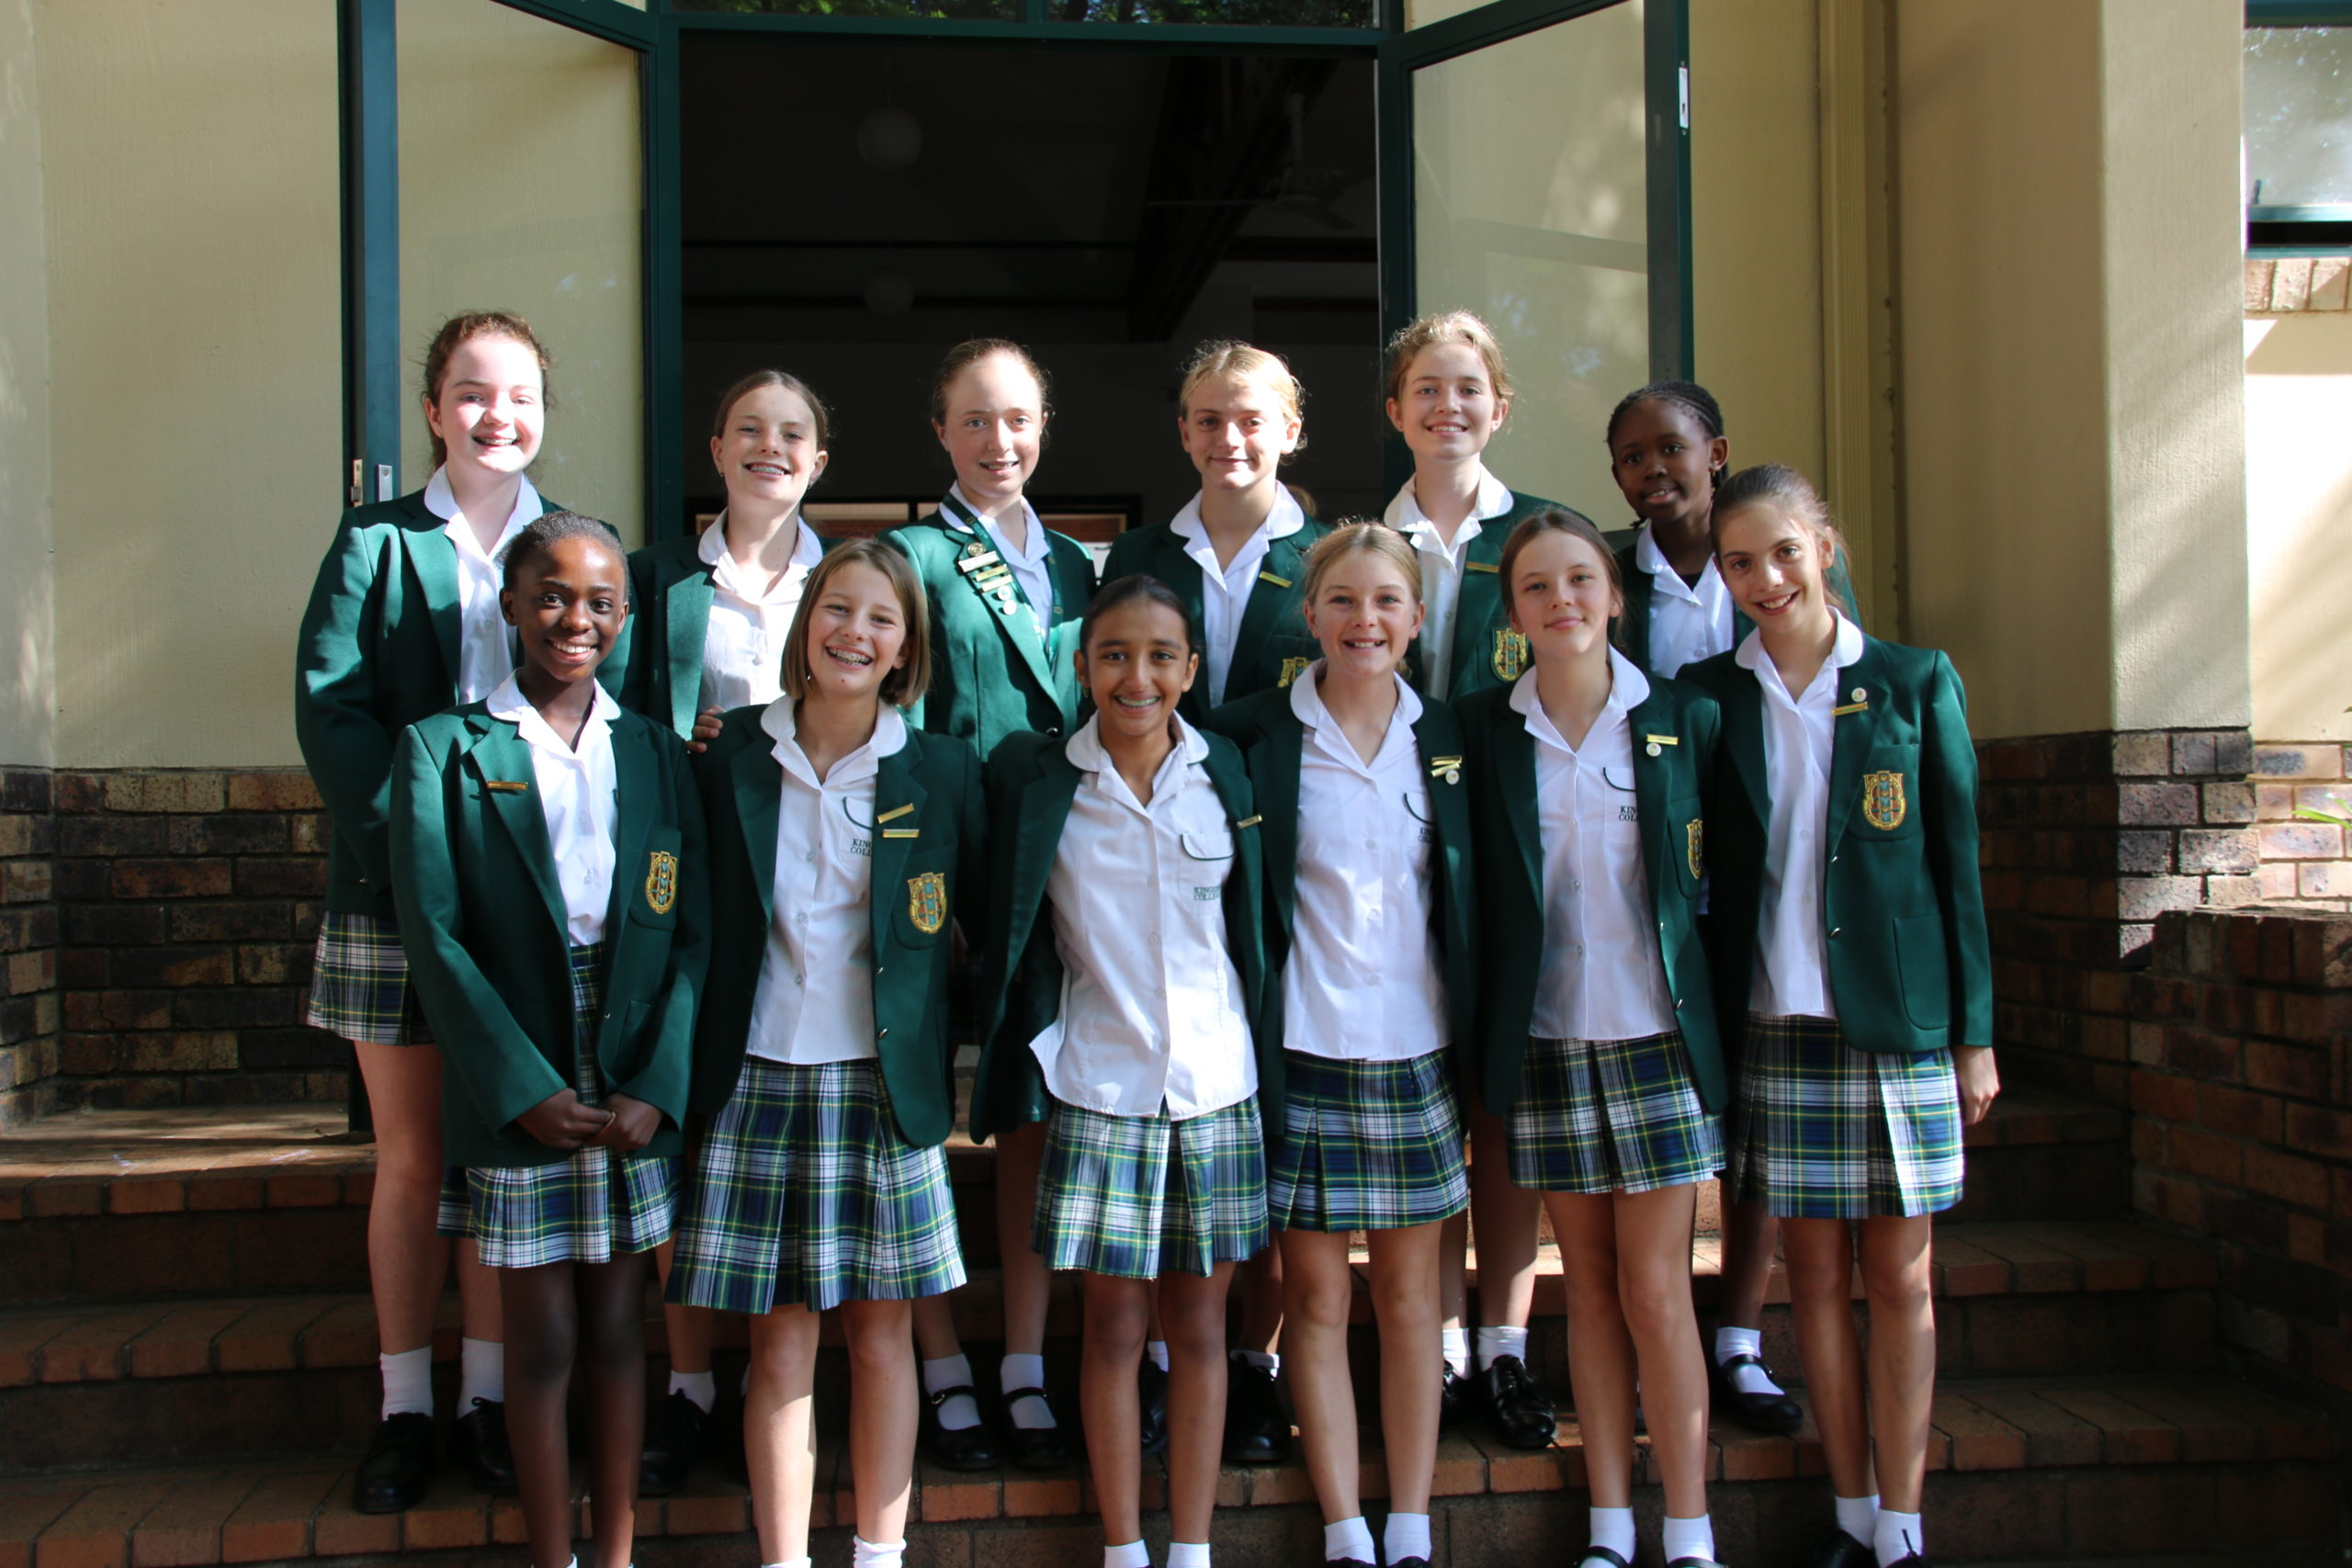 GREEN COMMITTEE scaled Kingsmead College